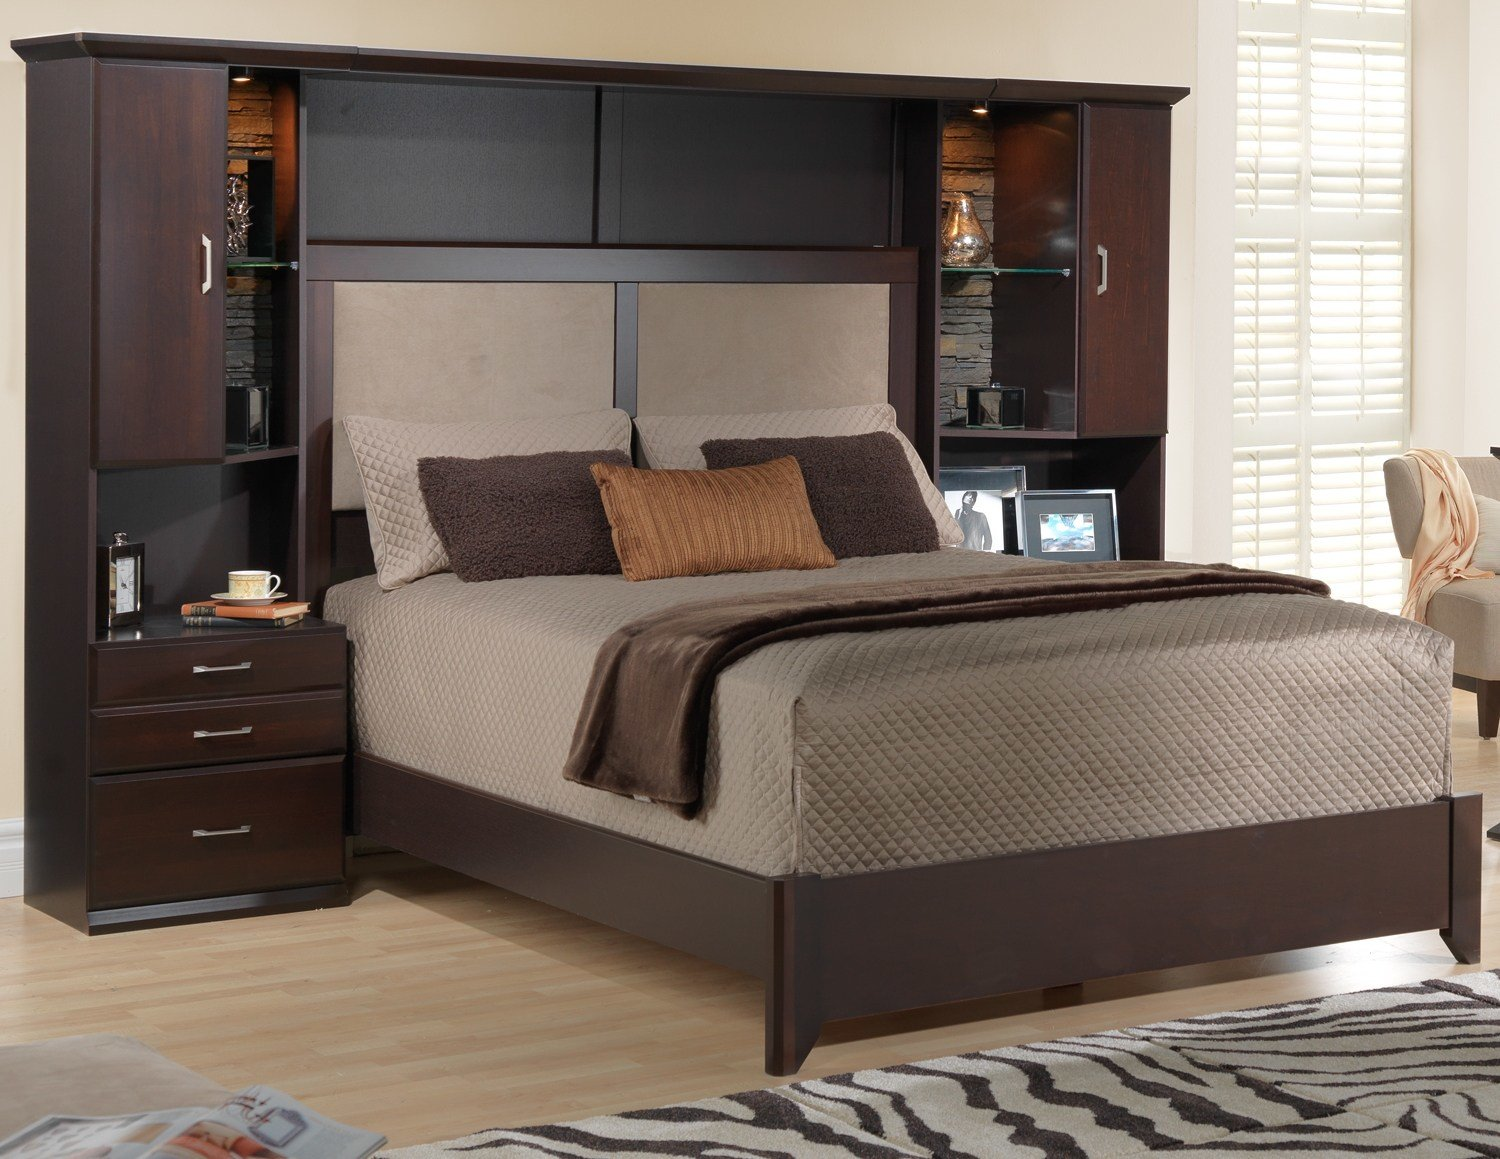 Best Bedroom Awesome Storage Headboard Queen With Royal Suite Palaces Design For Bed Ideas With Pictures